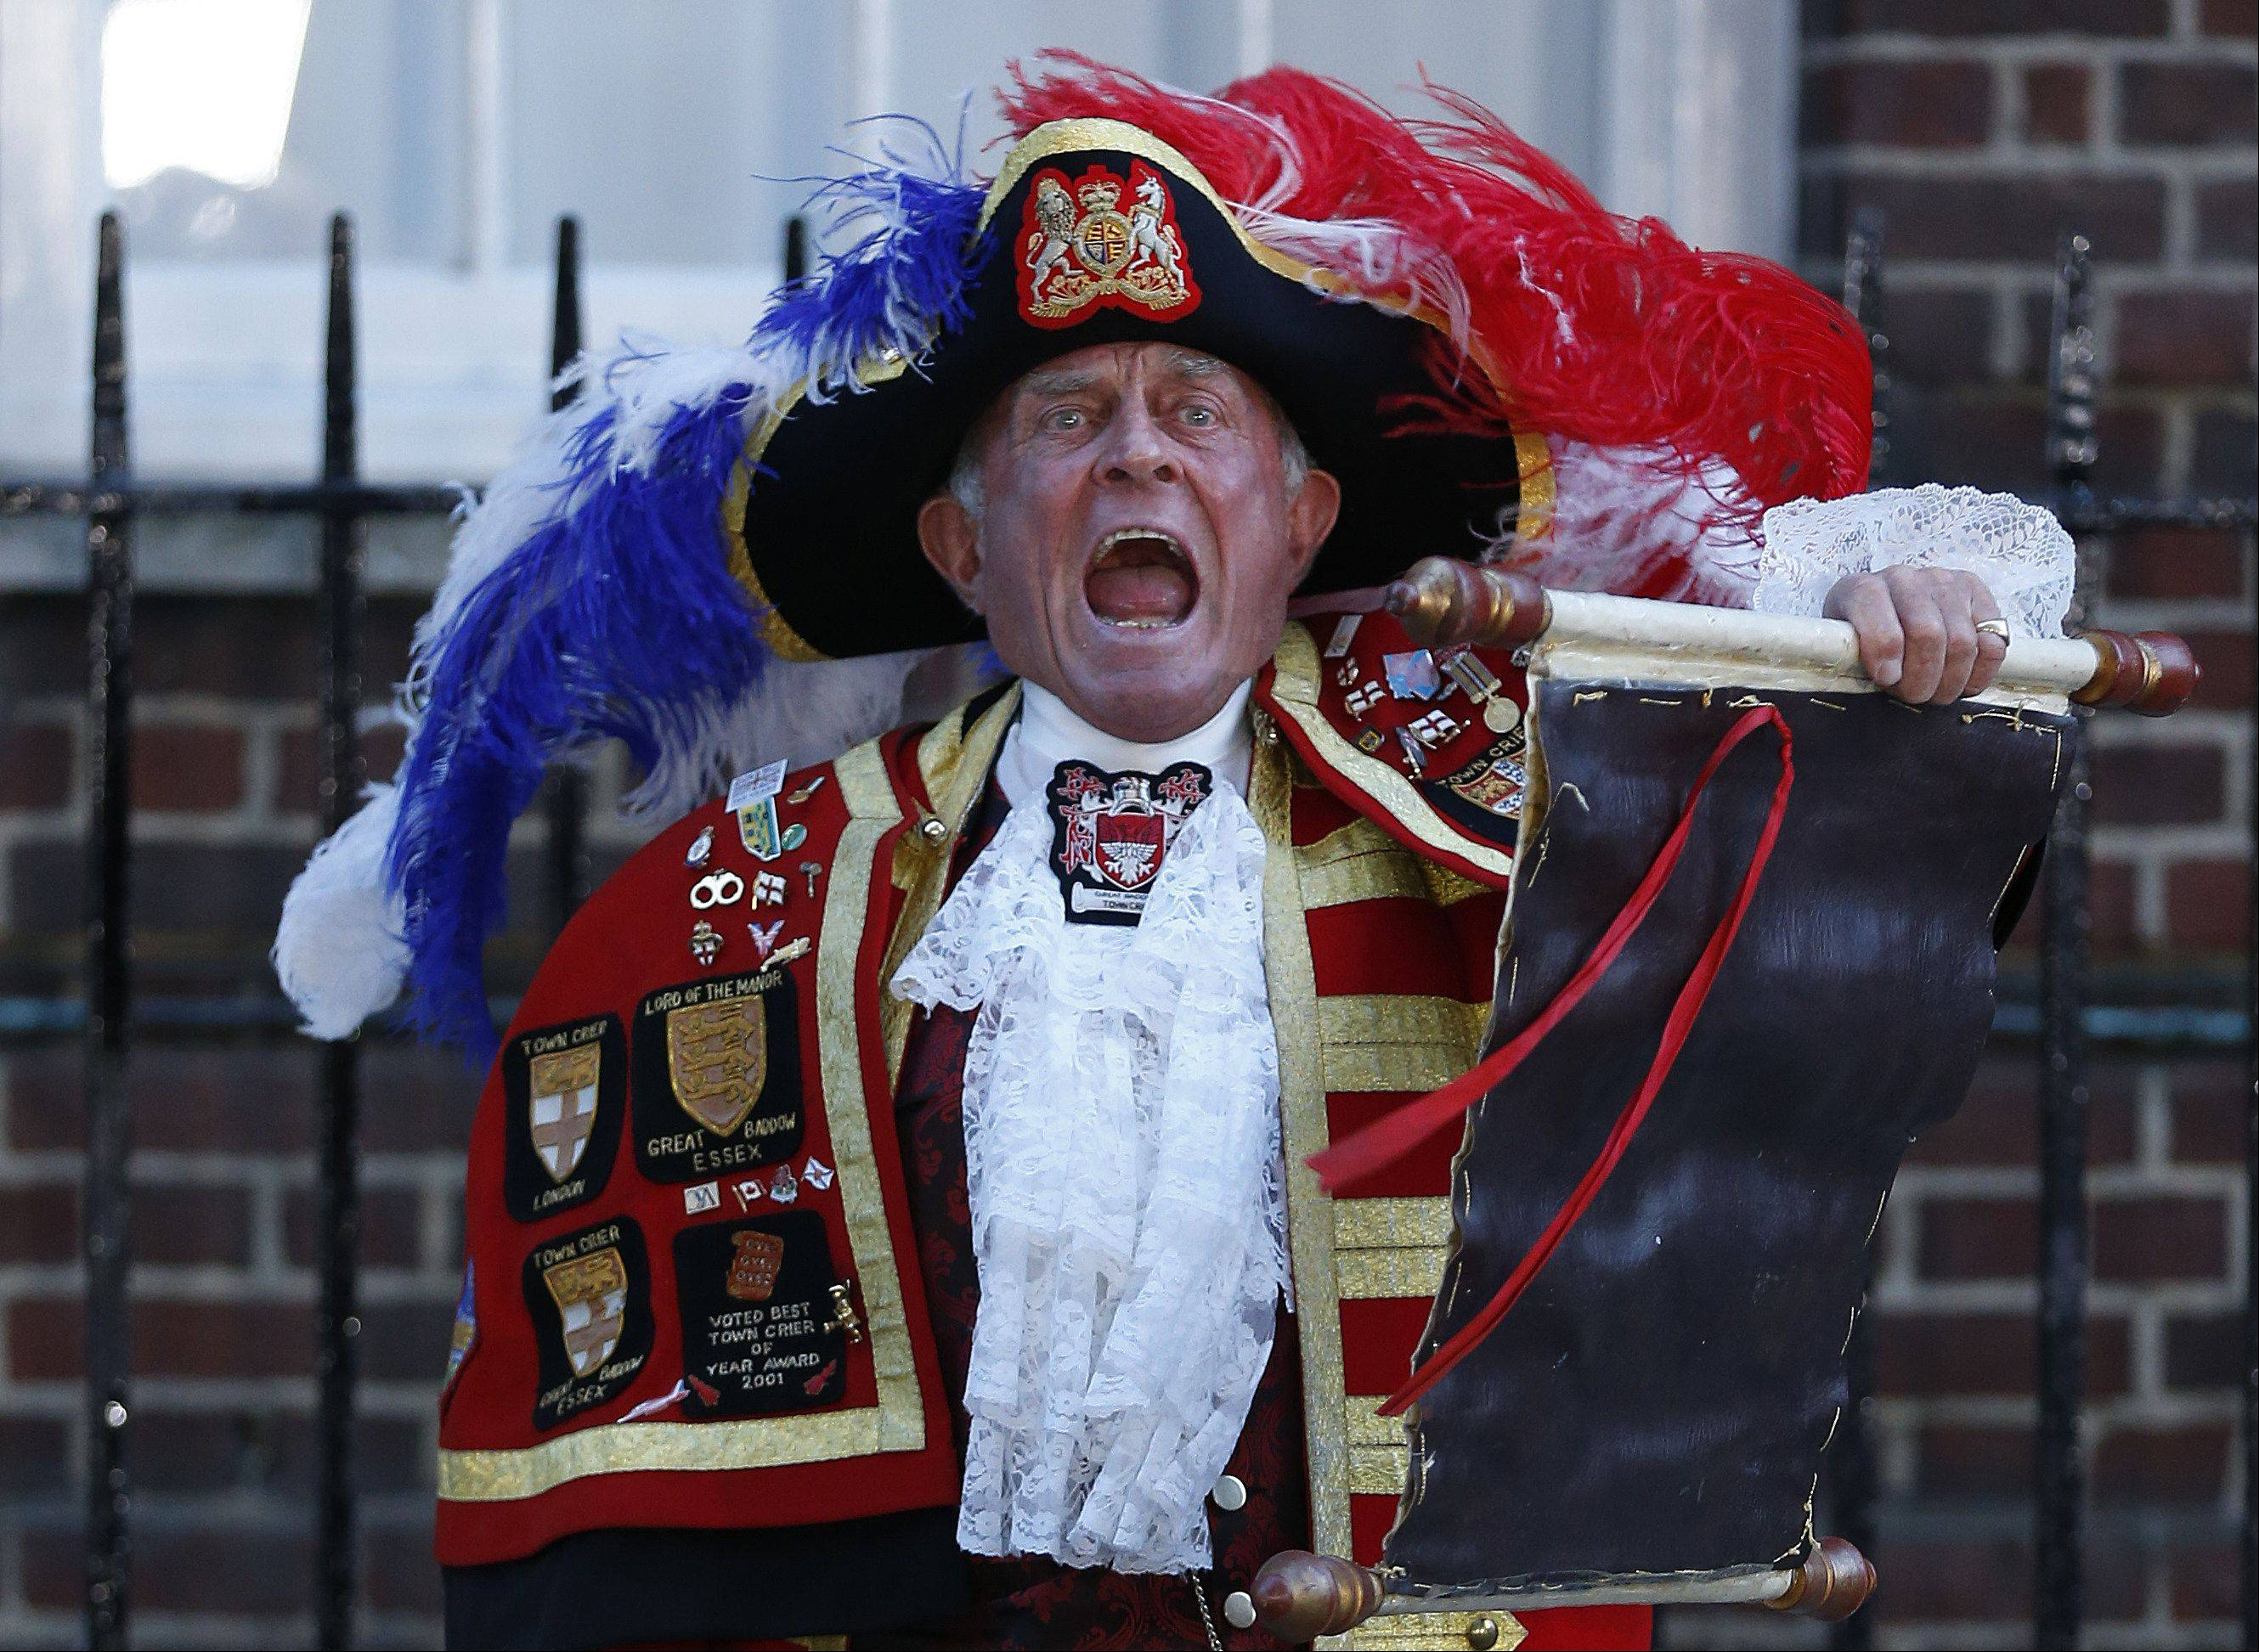 Tony Appleton, a town crier, announces the birth of the royal baby, outside St. Mary's Hospital exclusive Lindo Wing in London, Monday, July 22, 2013. Palace officials say Prince William's wife Kate has given birth to a baby boy. The baby was born at 4:24 p.m. and weighs 8 pounds 6 ounces. The infant will become third in line for the British throne after Prince Charles and William.